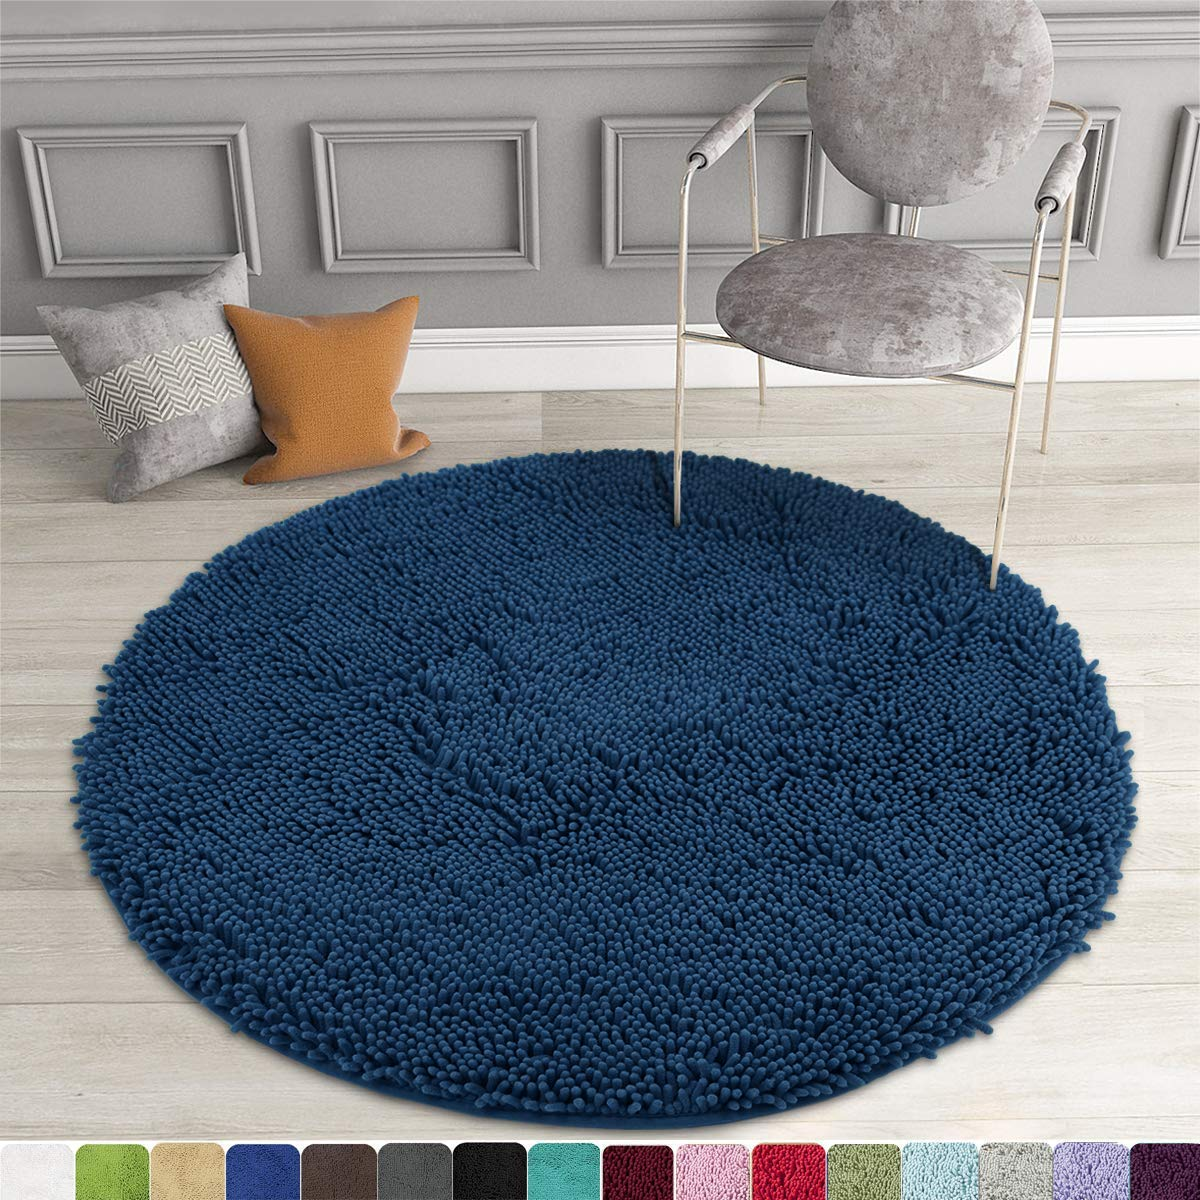 MAYSHINE Round Bath Mat Non-Slip Chenille 3 Feet Shaggy Bathroom Rugs Extra Soft and Absorbent Perfect Plush Carpet for Living Room Bedroom, Machine Wash/Dry-Dark Blue